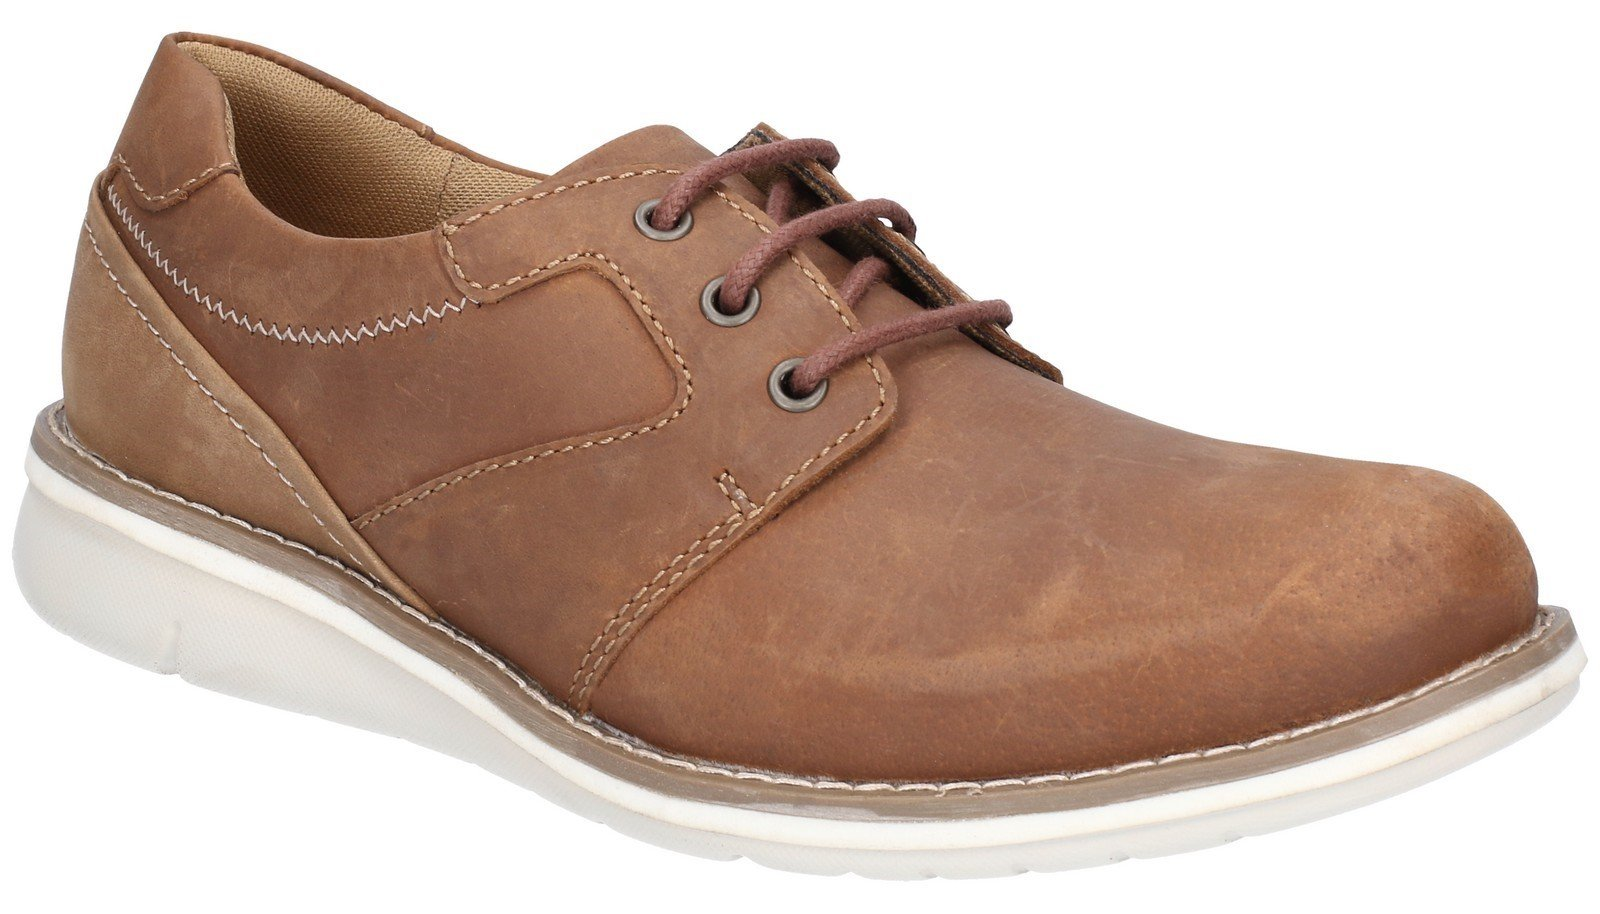 Hush Puppies Men's Chase Casual Lace Up Trainer Various Colours 28352 - Tan/Brown 6